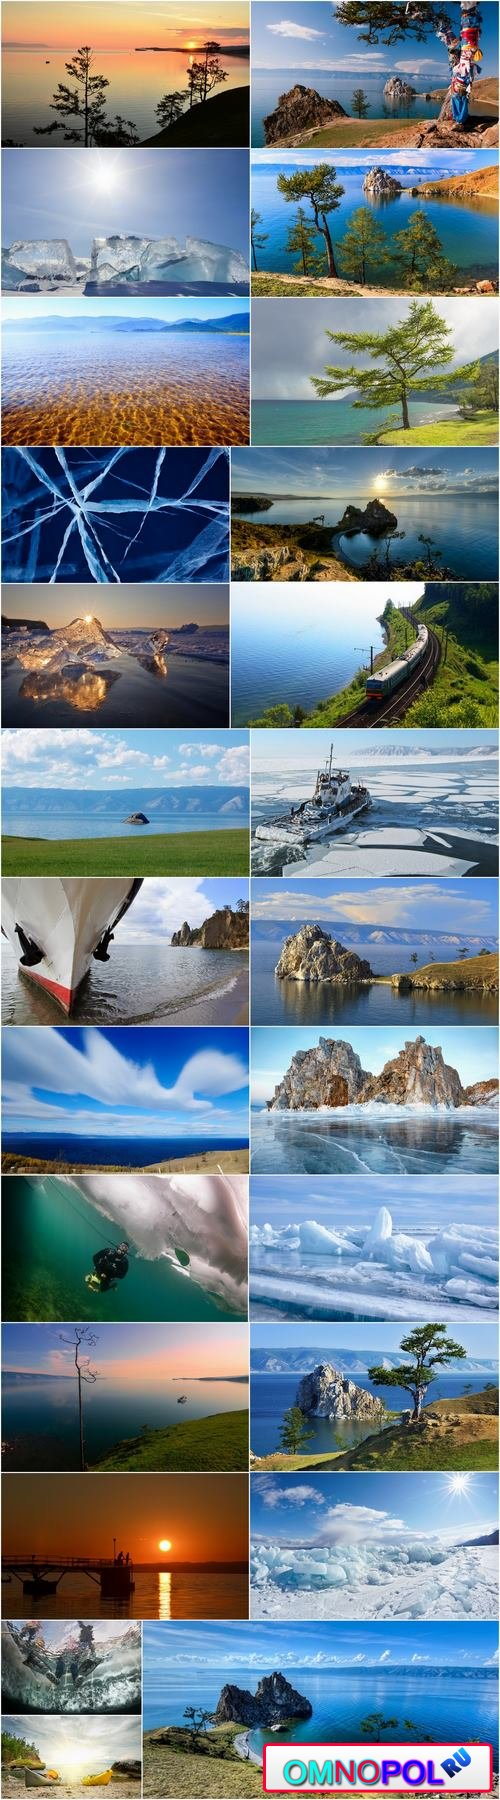 Lake Baikal nature landscape rock beach sand sunset water 25 HQ Jpeg